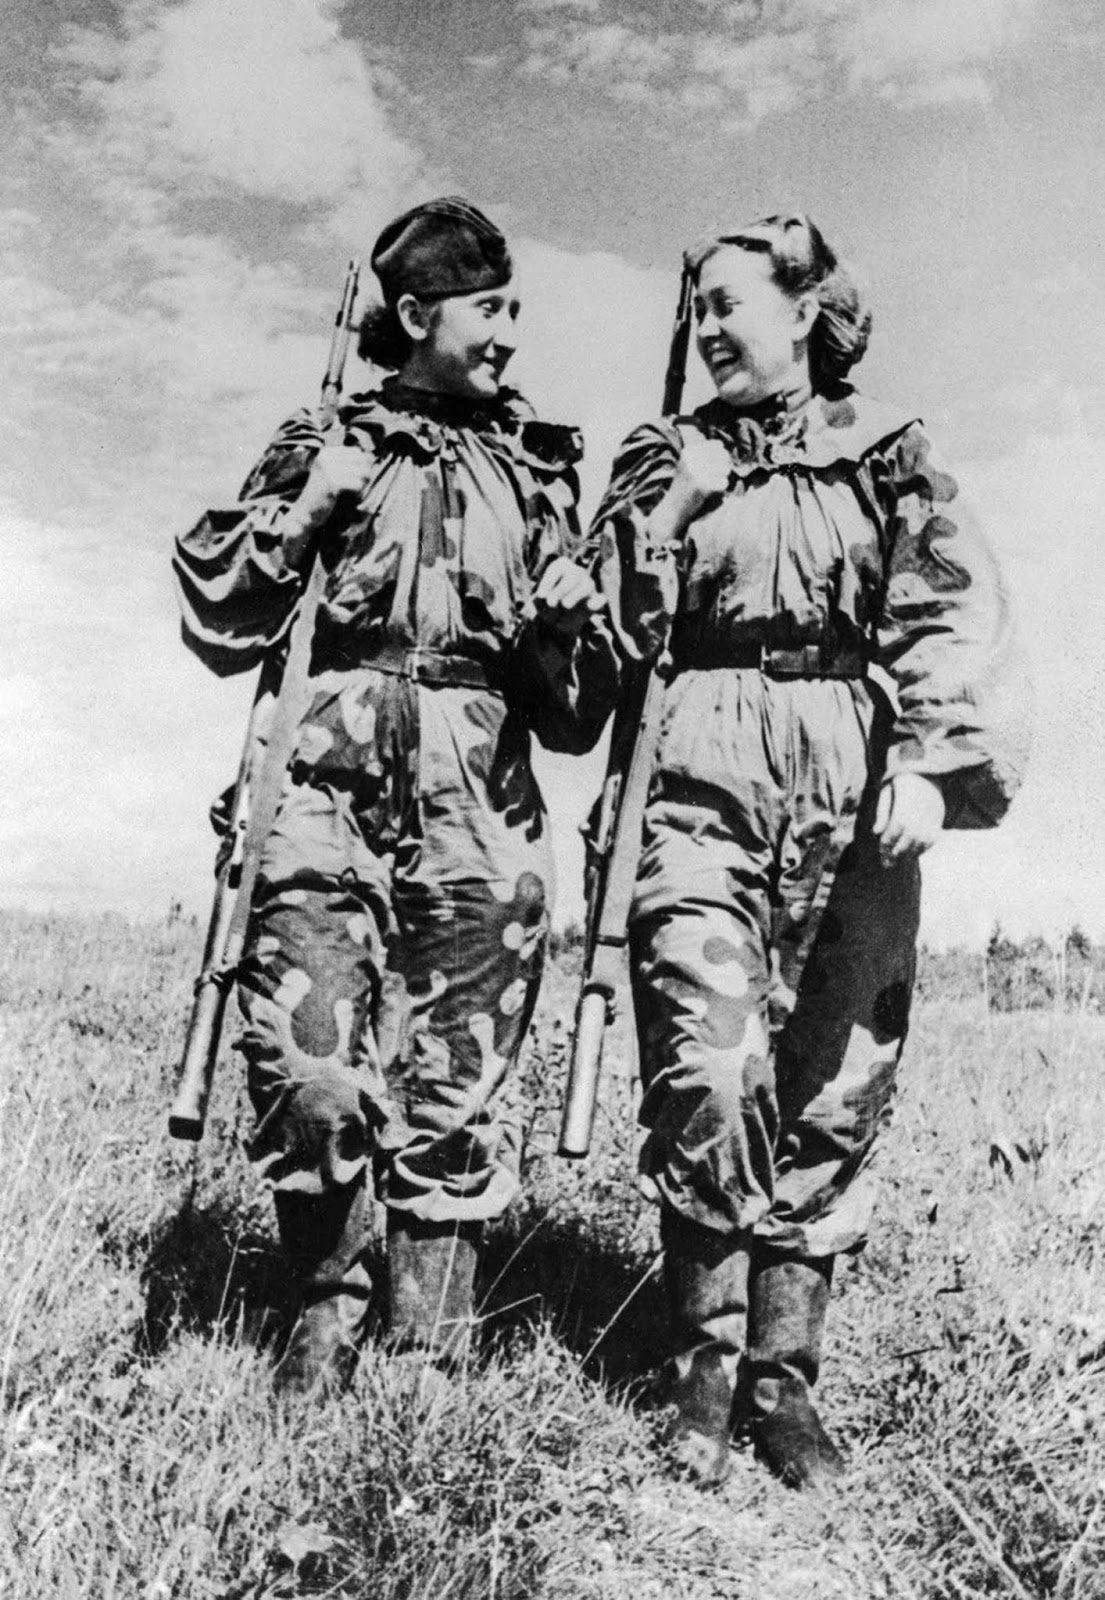 Snipers C. Bykova and R. Skrypnikova return from a combat assignment. 1943.